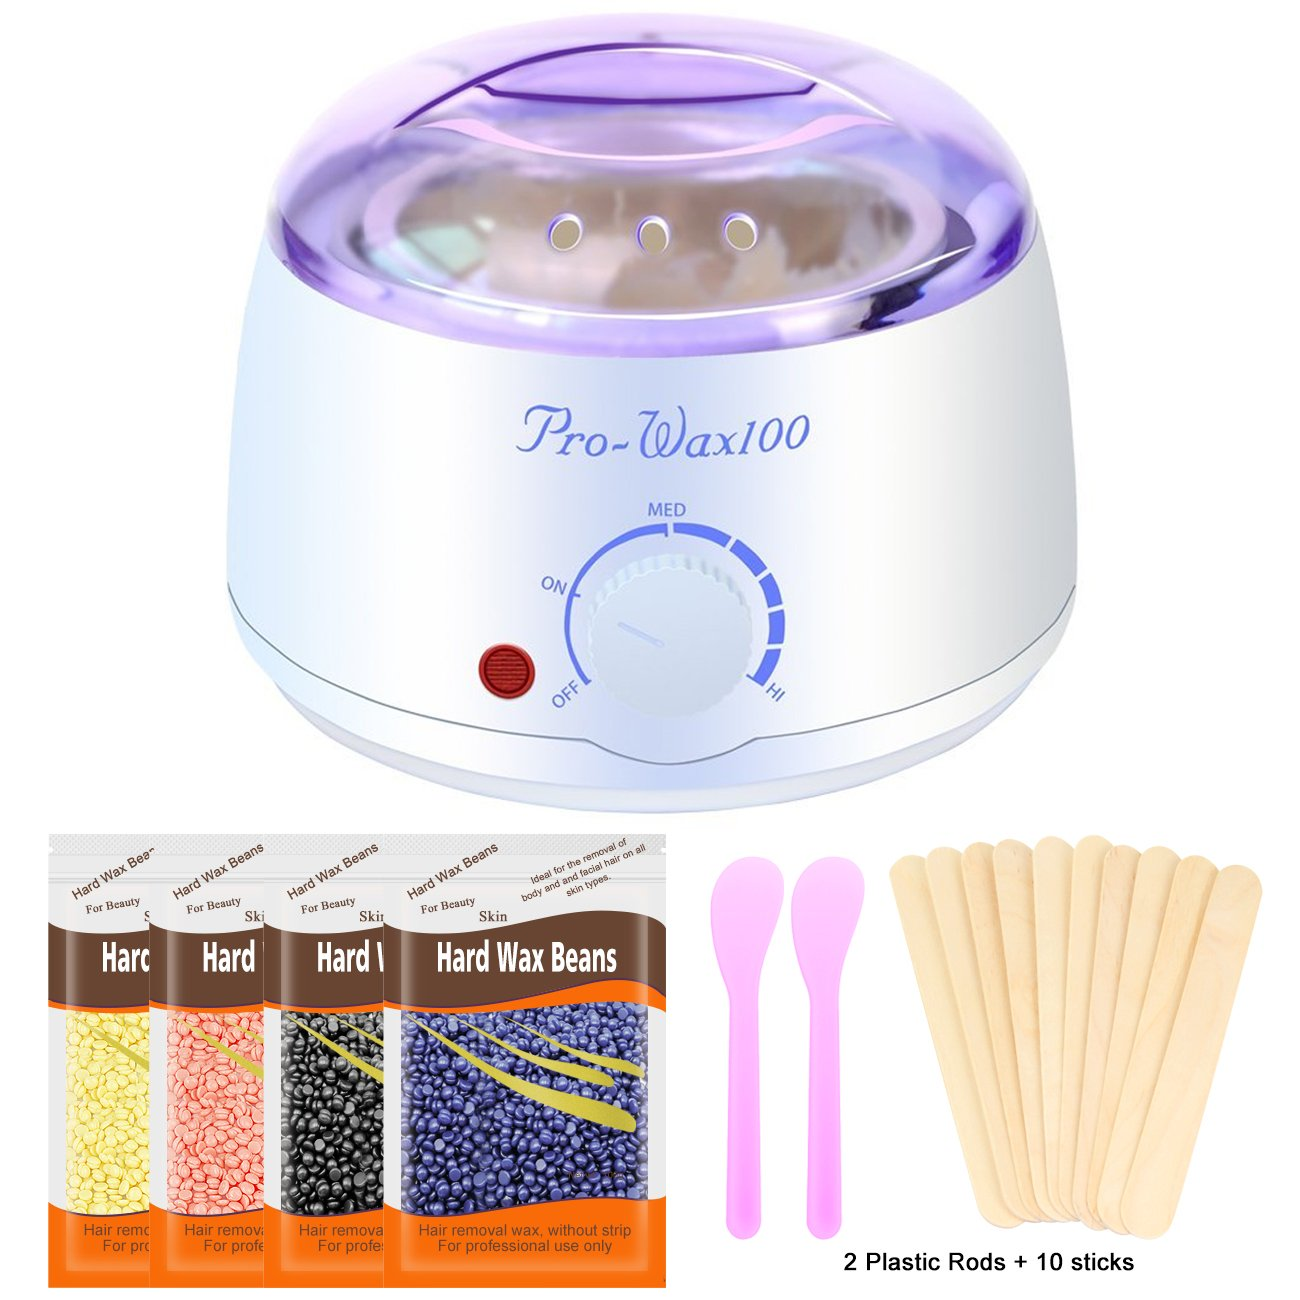 Waxing Kit Hot Wax Warmer kit with 4 Flavors Hard Pearl Beans, Painless Hair Removal Wax heater Machine for Women Men's Body Brazilian Gigi Ear Nose Leg at Home with 10 Applicator Sticks 2 Mask Stick